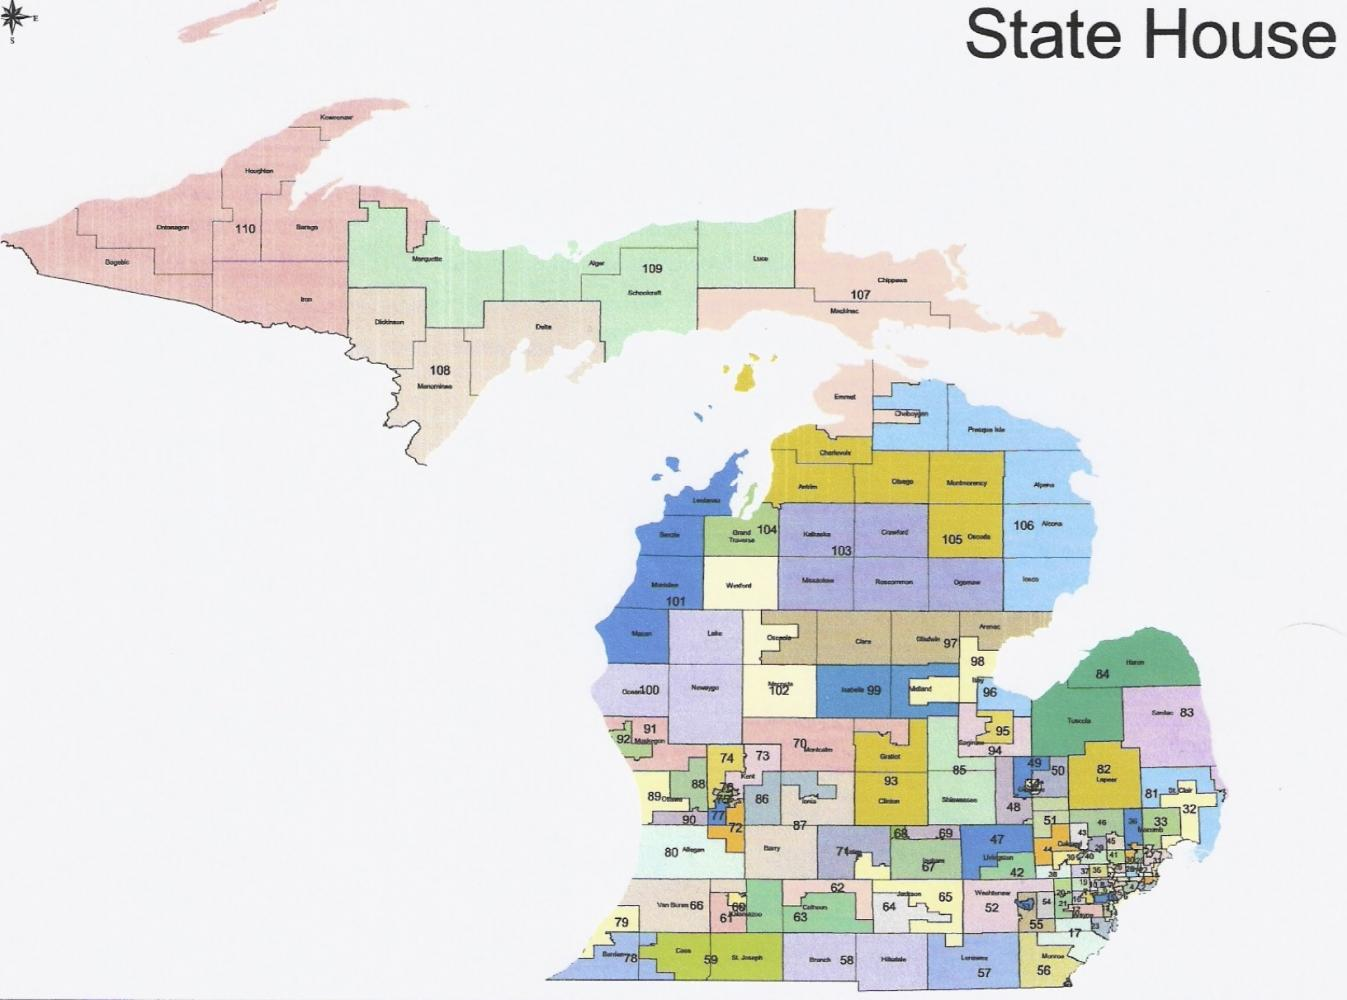 michigan s state house of representatives districts po courtesy the western right